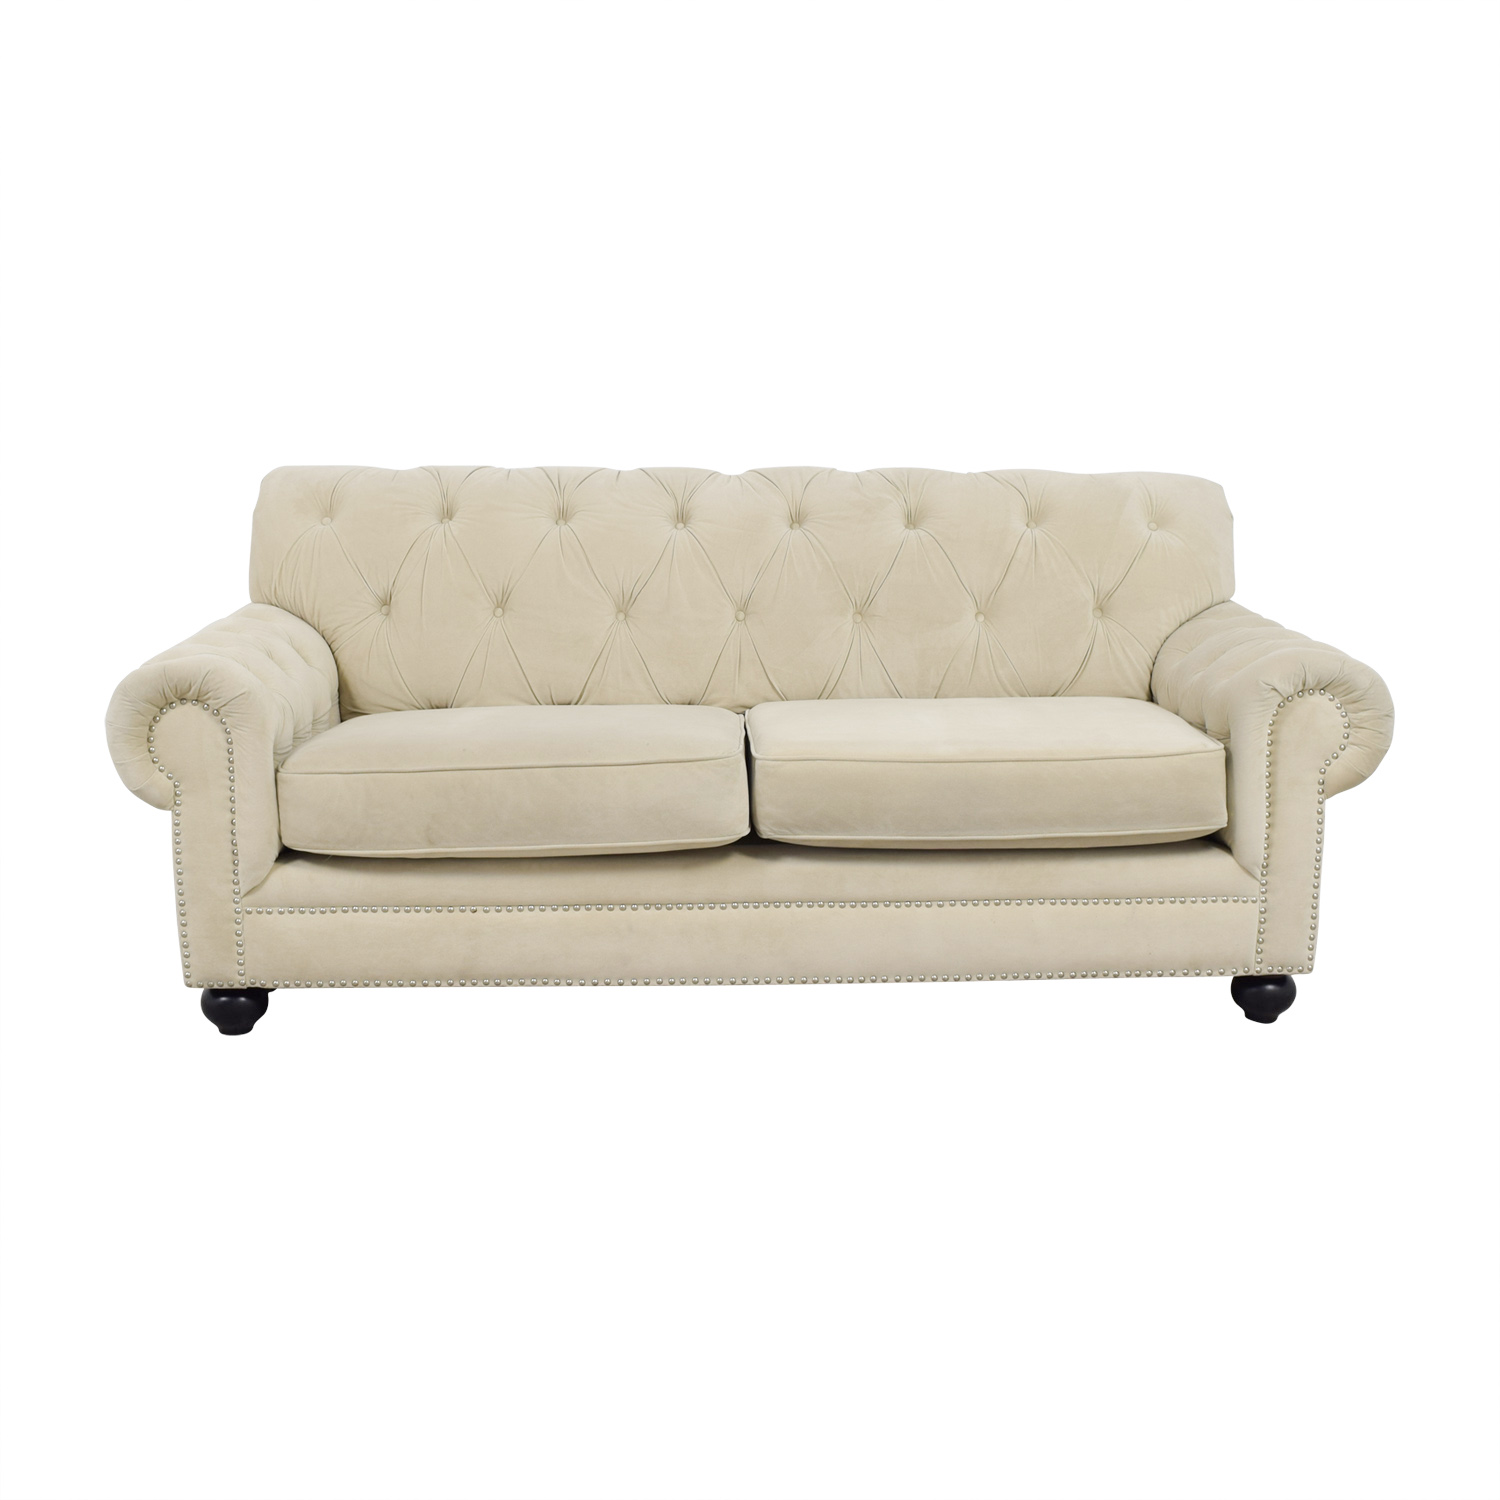 Chesterfield Style Tufted Beige Velvet Sofa used